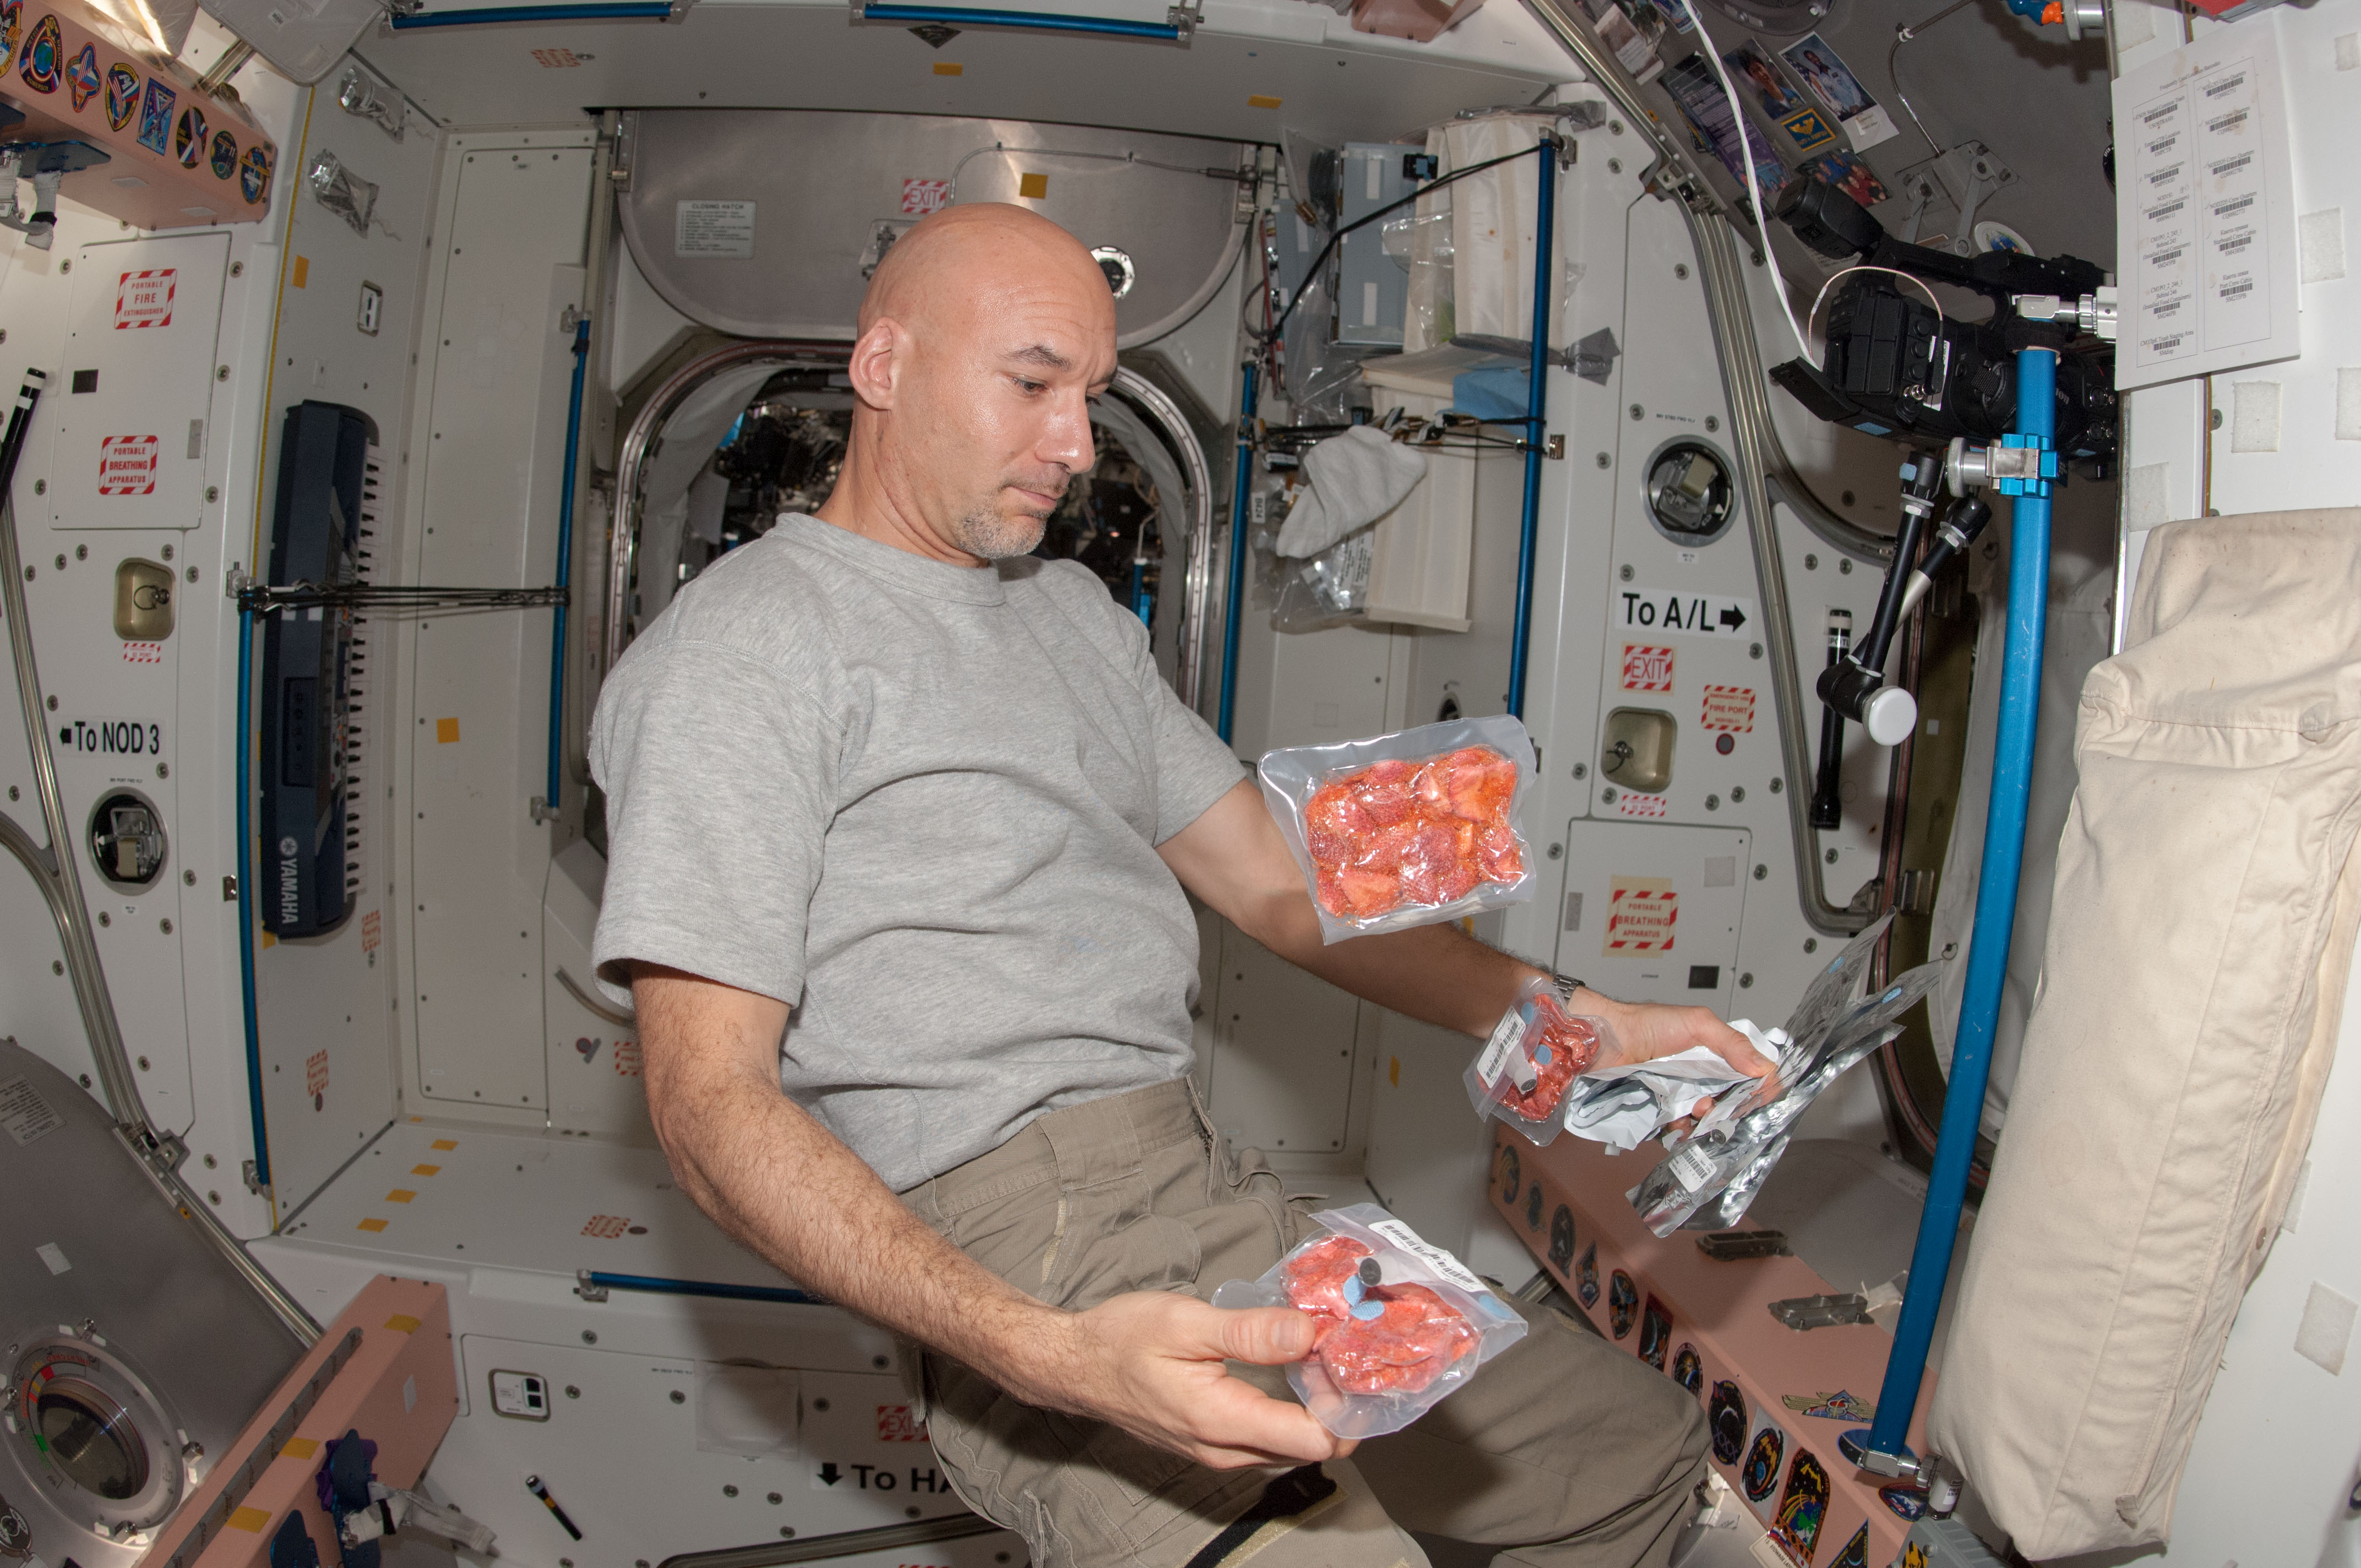 astronauts eating almonds in space - photo #4